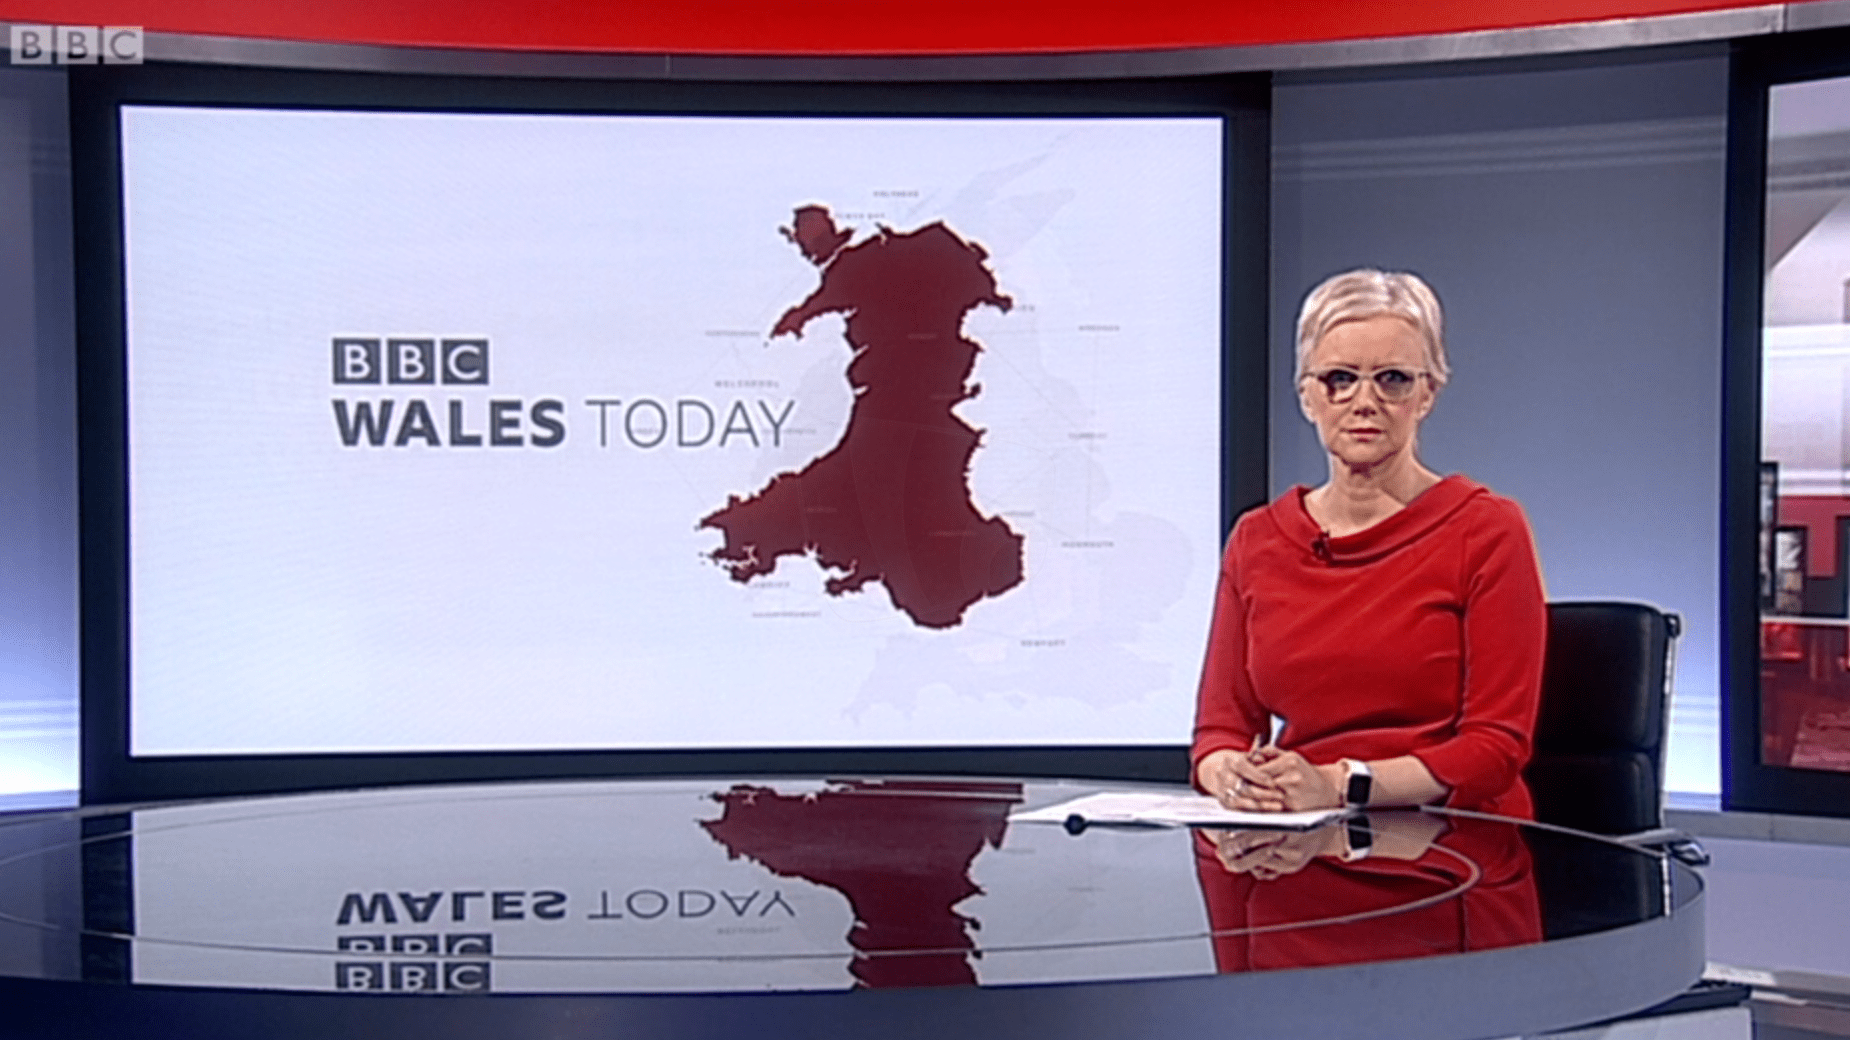 PICTURED: BBC Wales Today studio presentation. Presenter: TBC.